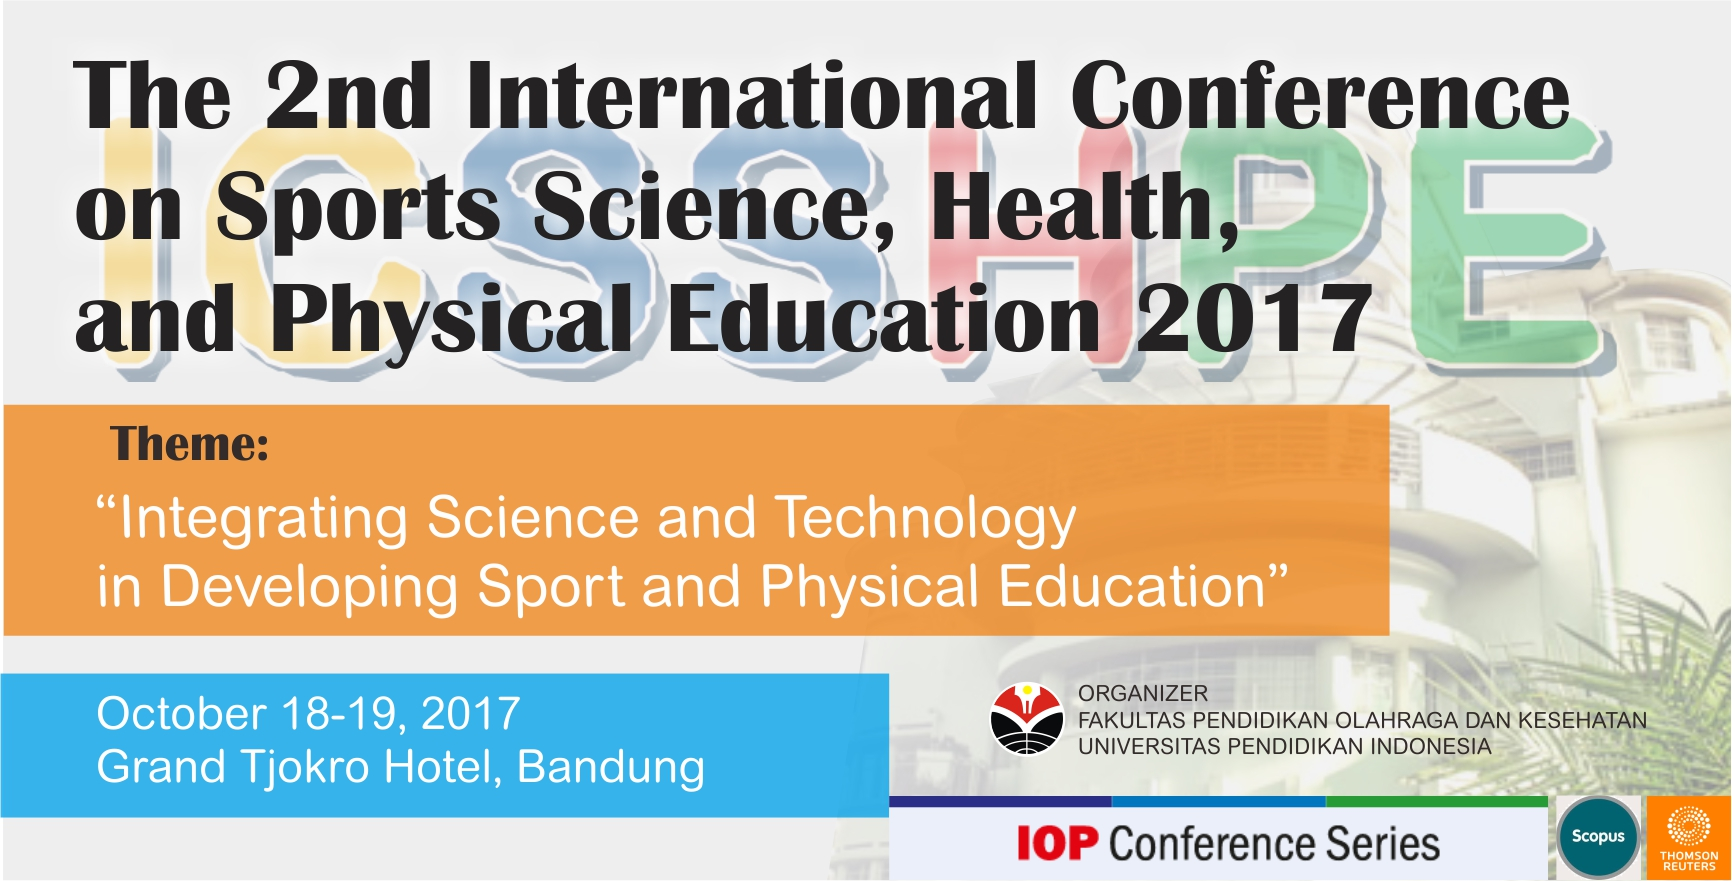 Welcome to The 2nd ICSSHPE 2017